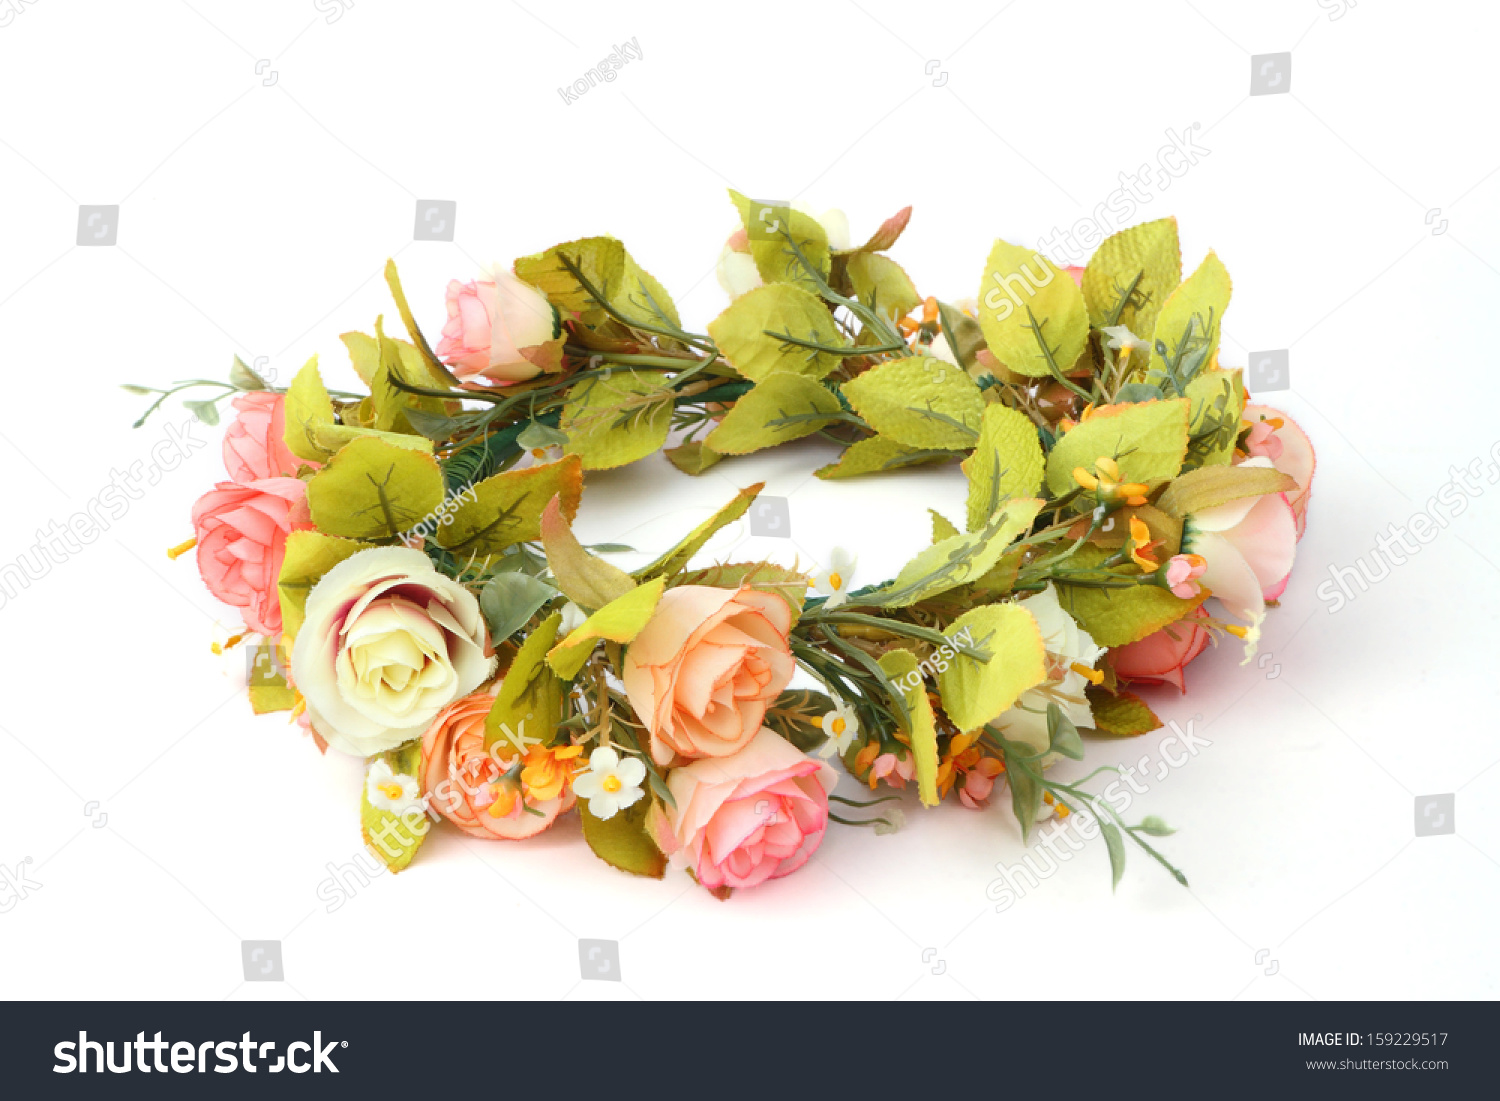 Forest coronal colorful fake flower crown stock photo edit now forest coronal or colorful fake flower crown isolated on white background izmirmasajfo